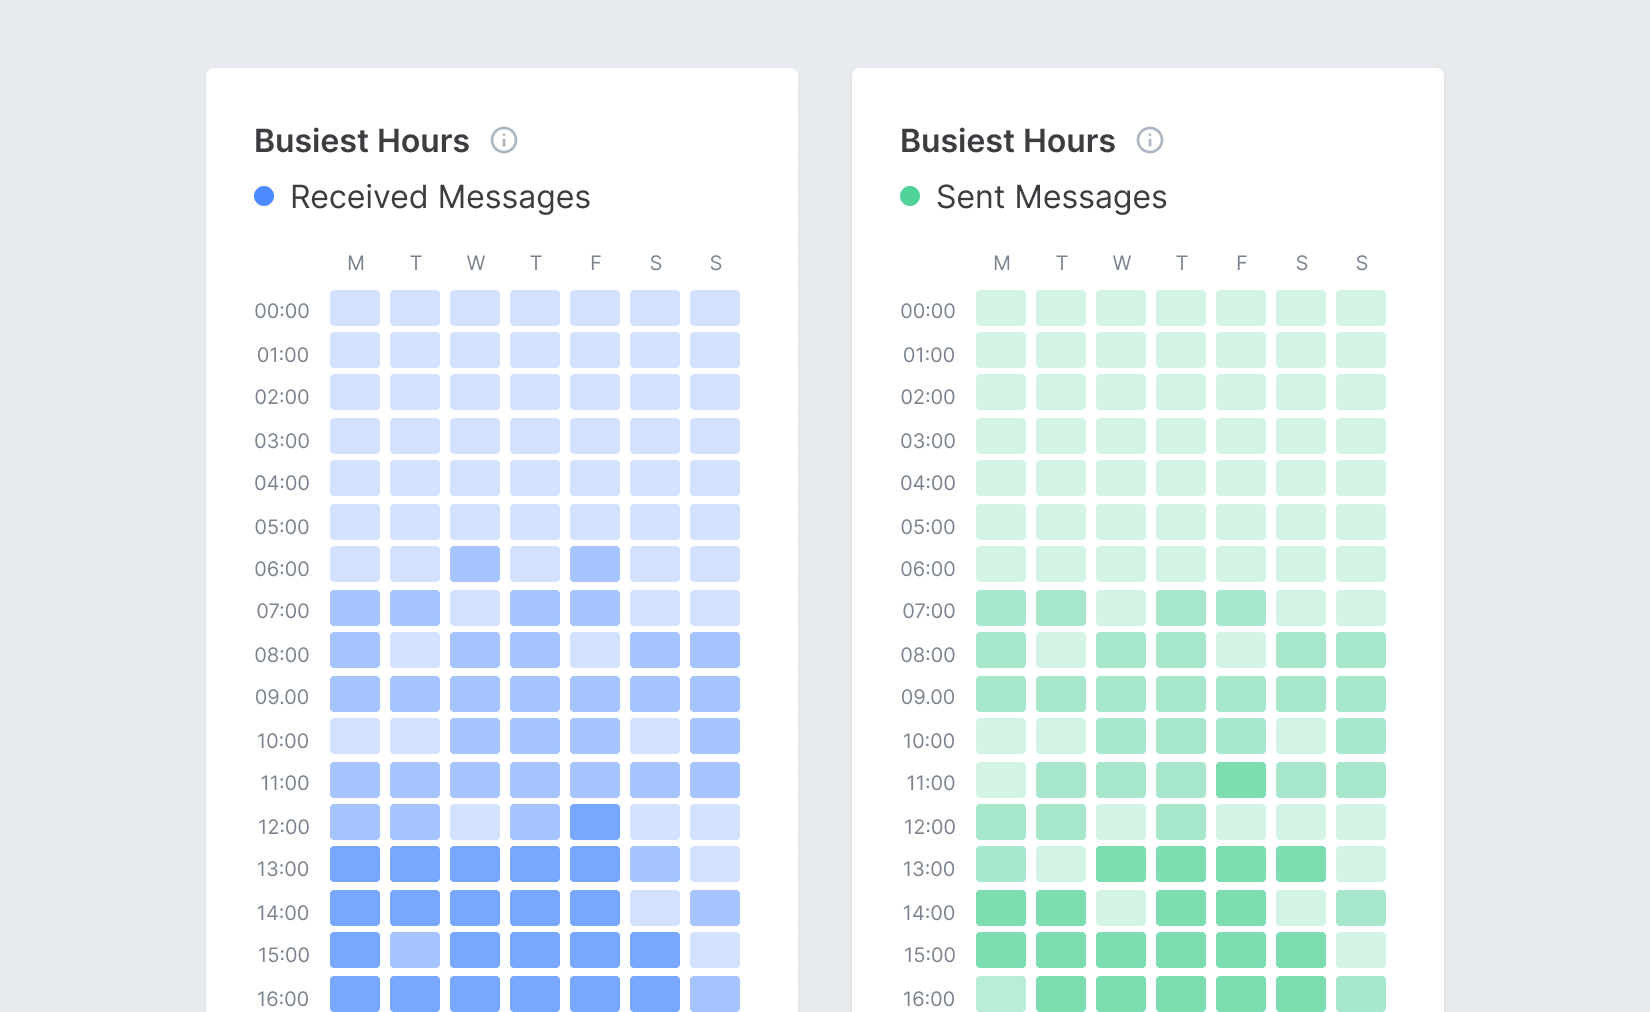 Screenshot of Email Meter, showing analytics and statistics about Busiest Hours